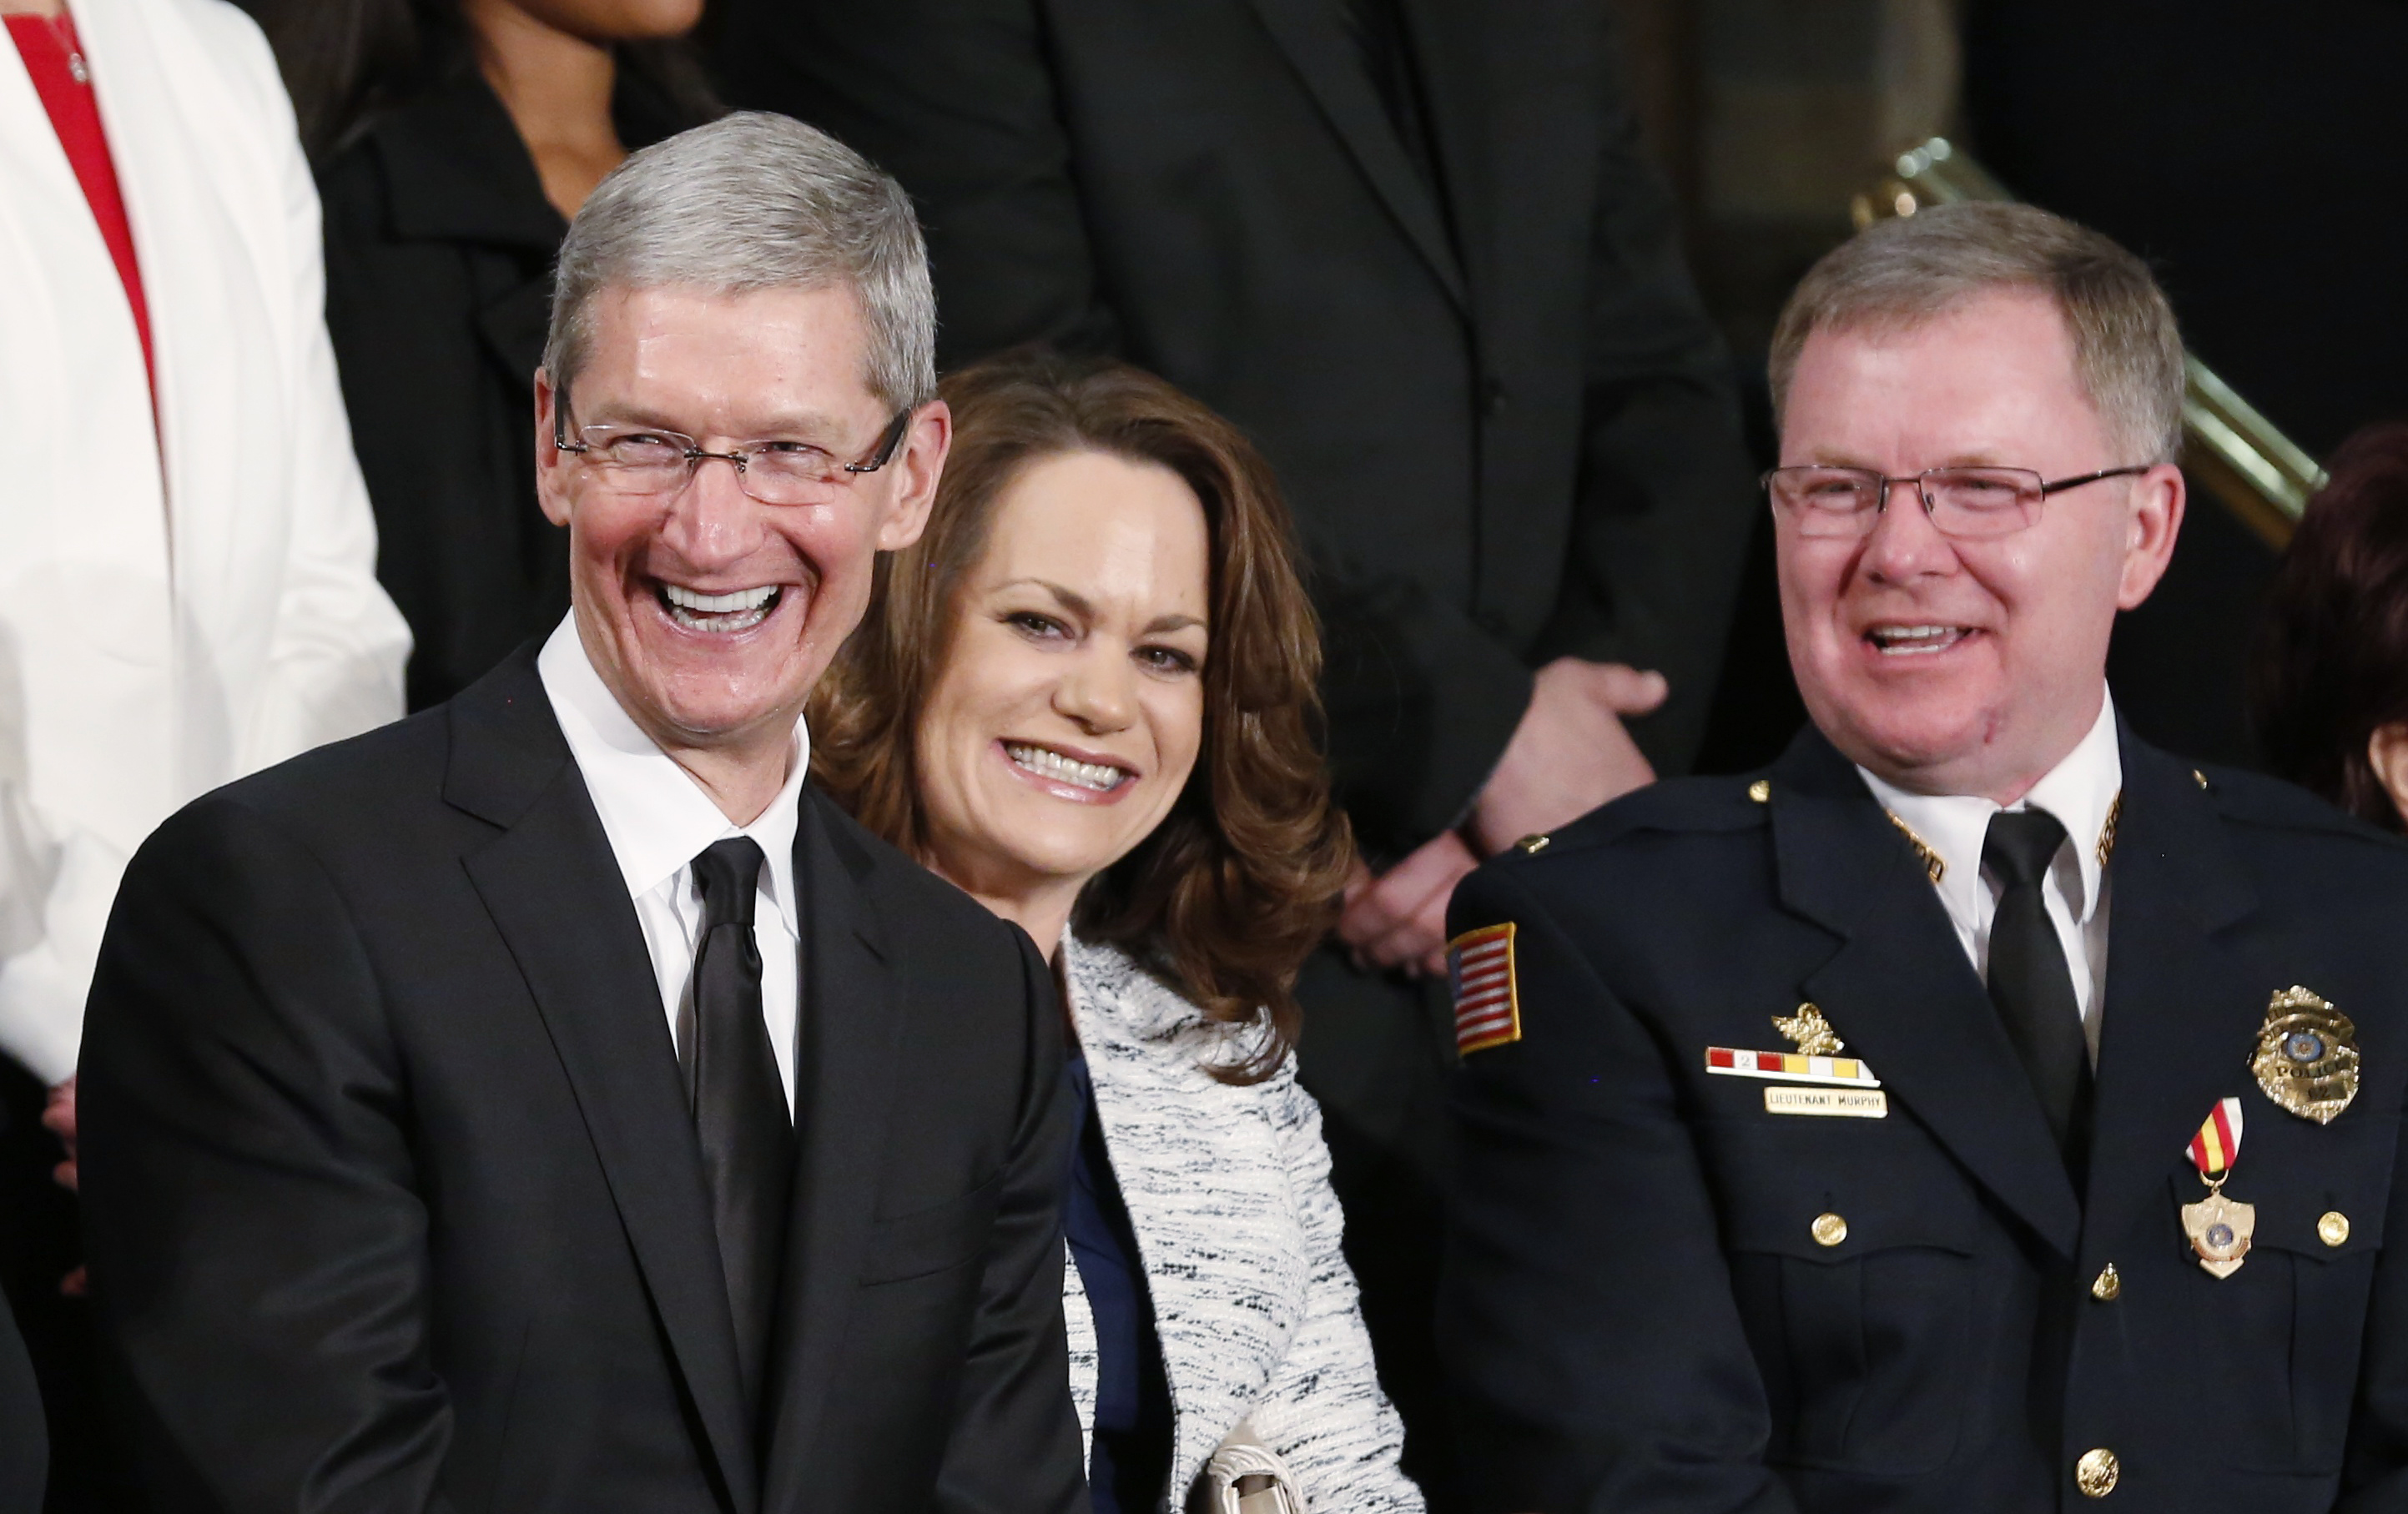 Apple CEO Tim Cook is pictured before the State of the Union address by U.S. President Barack Obama on Capitol Hill in Washington, Feb. 12, 2013. Cook announced at the end of last year that Apple will invest $100 million in domestic manufacturing to produce some Macs here.